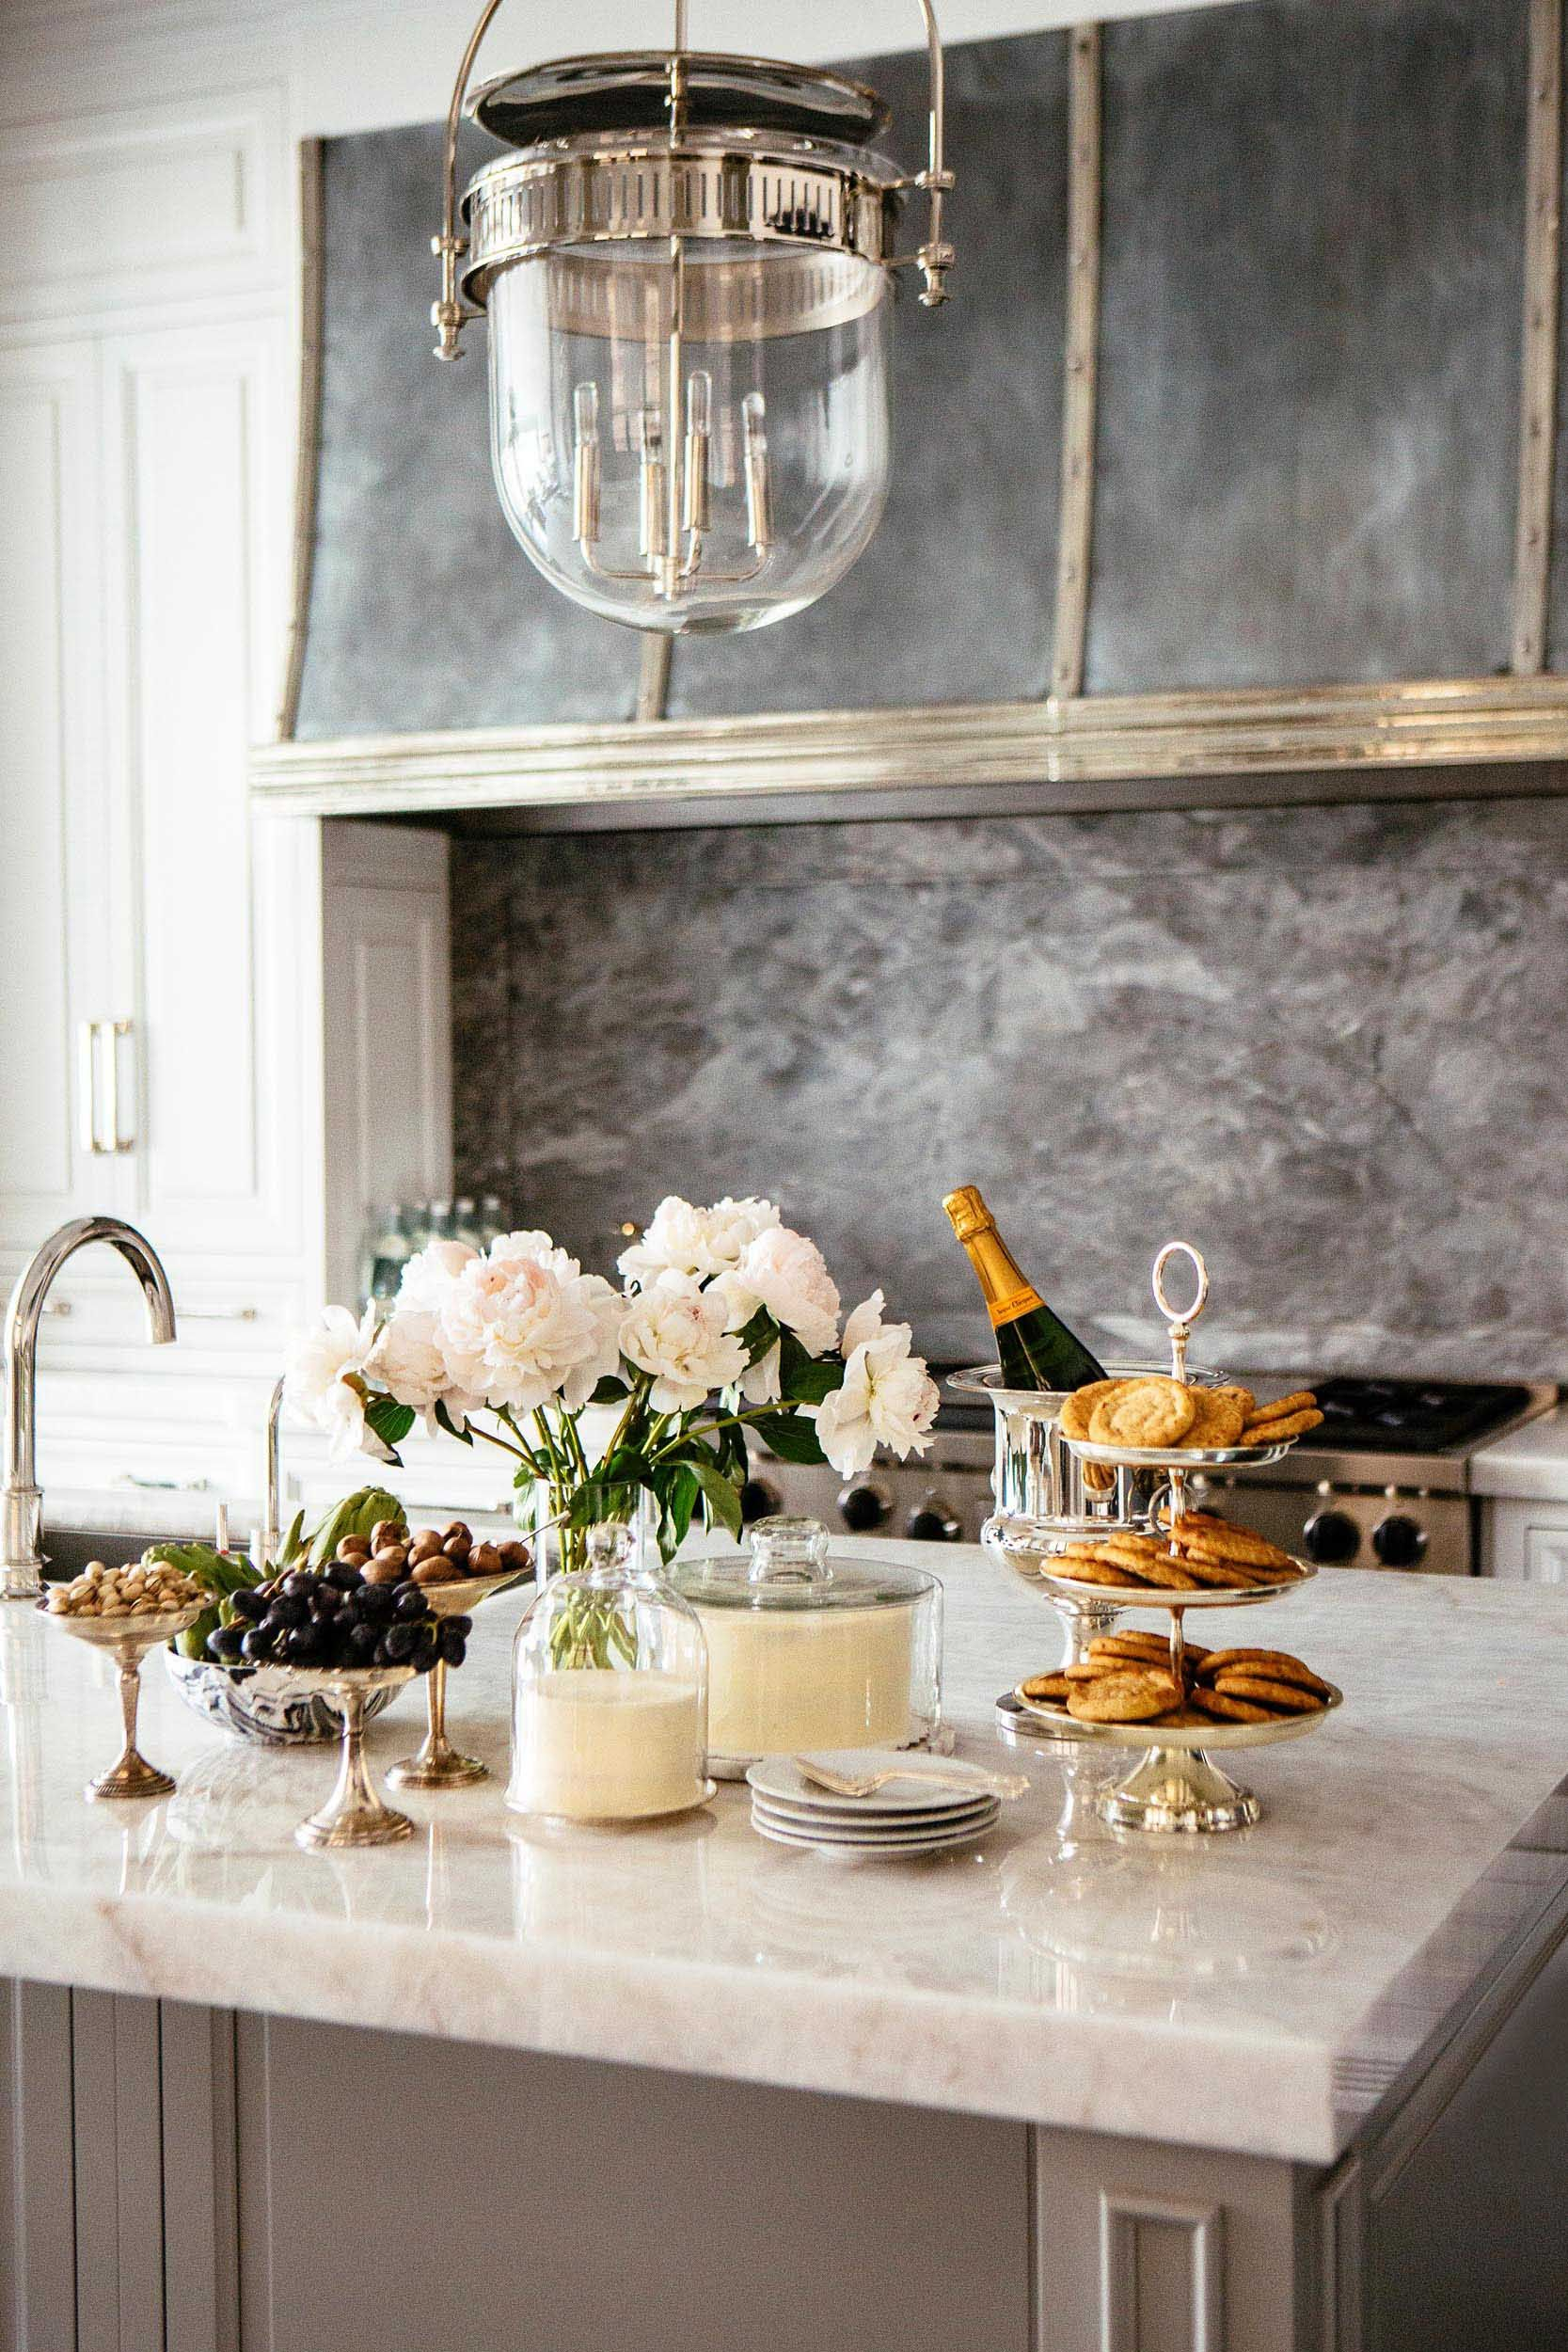 Parisian Classic | For the Home - Kitchens | Pinterest